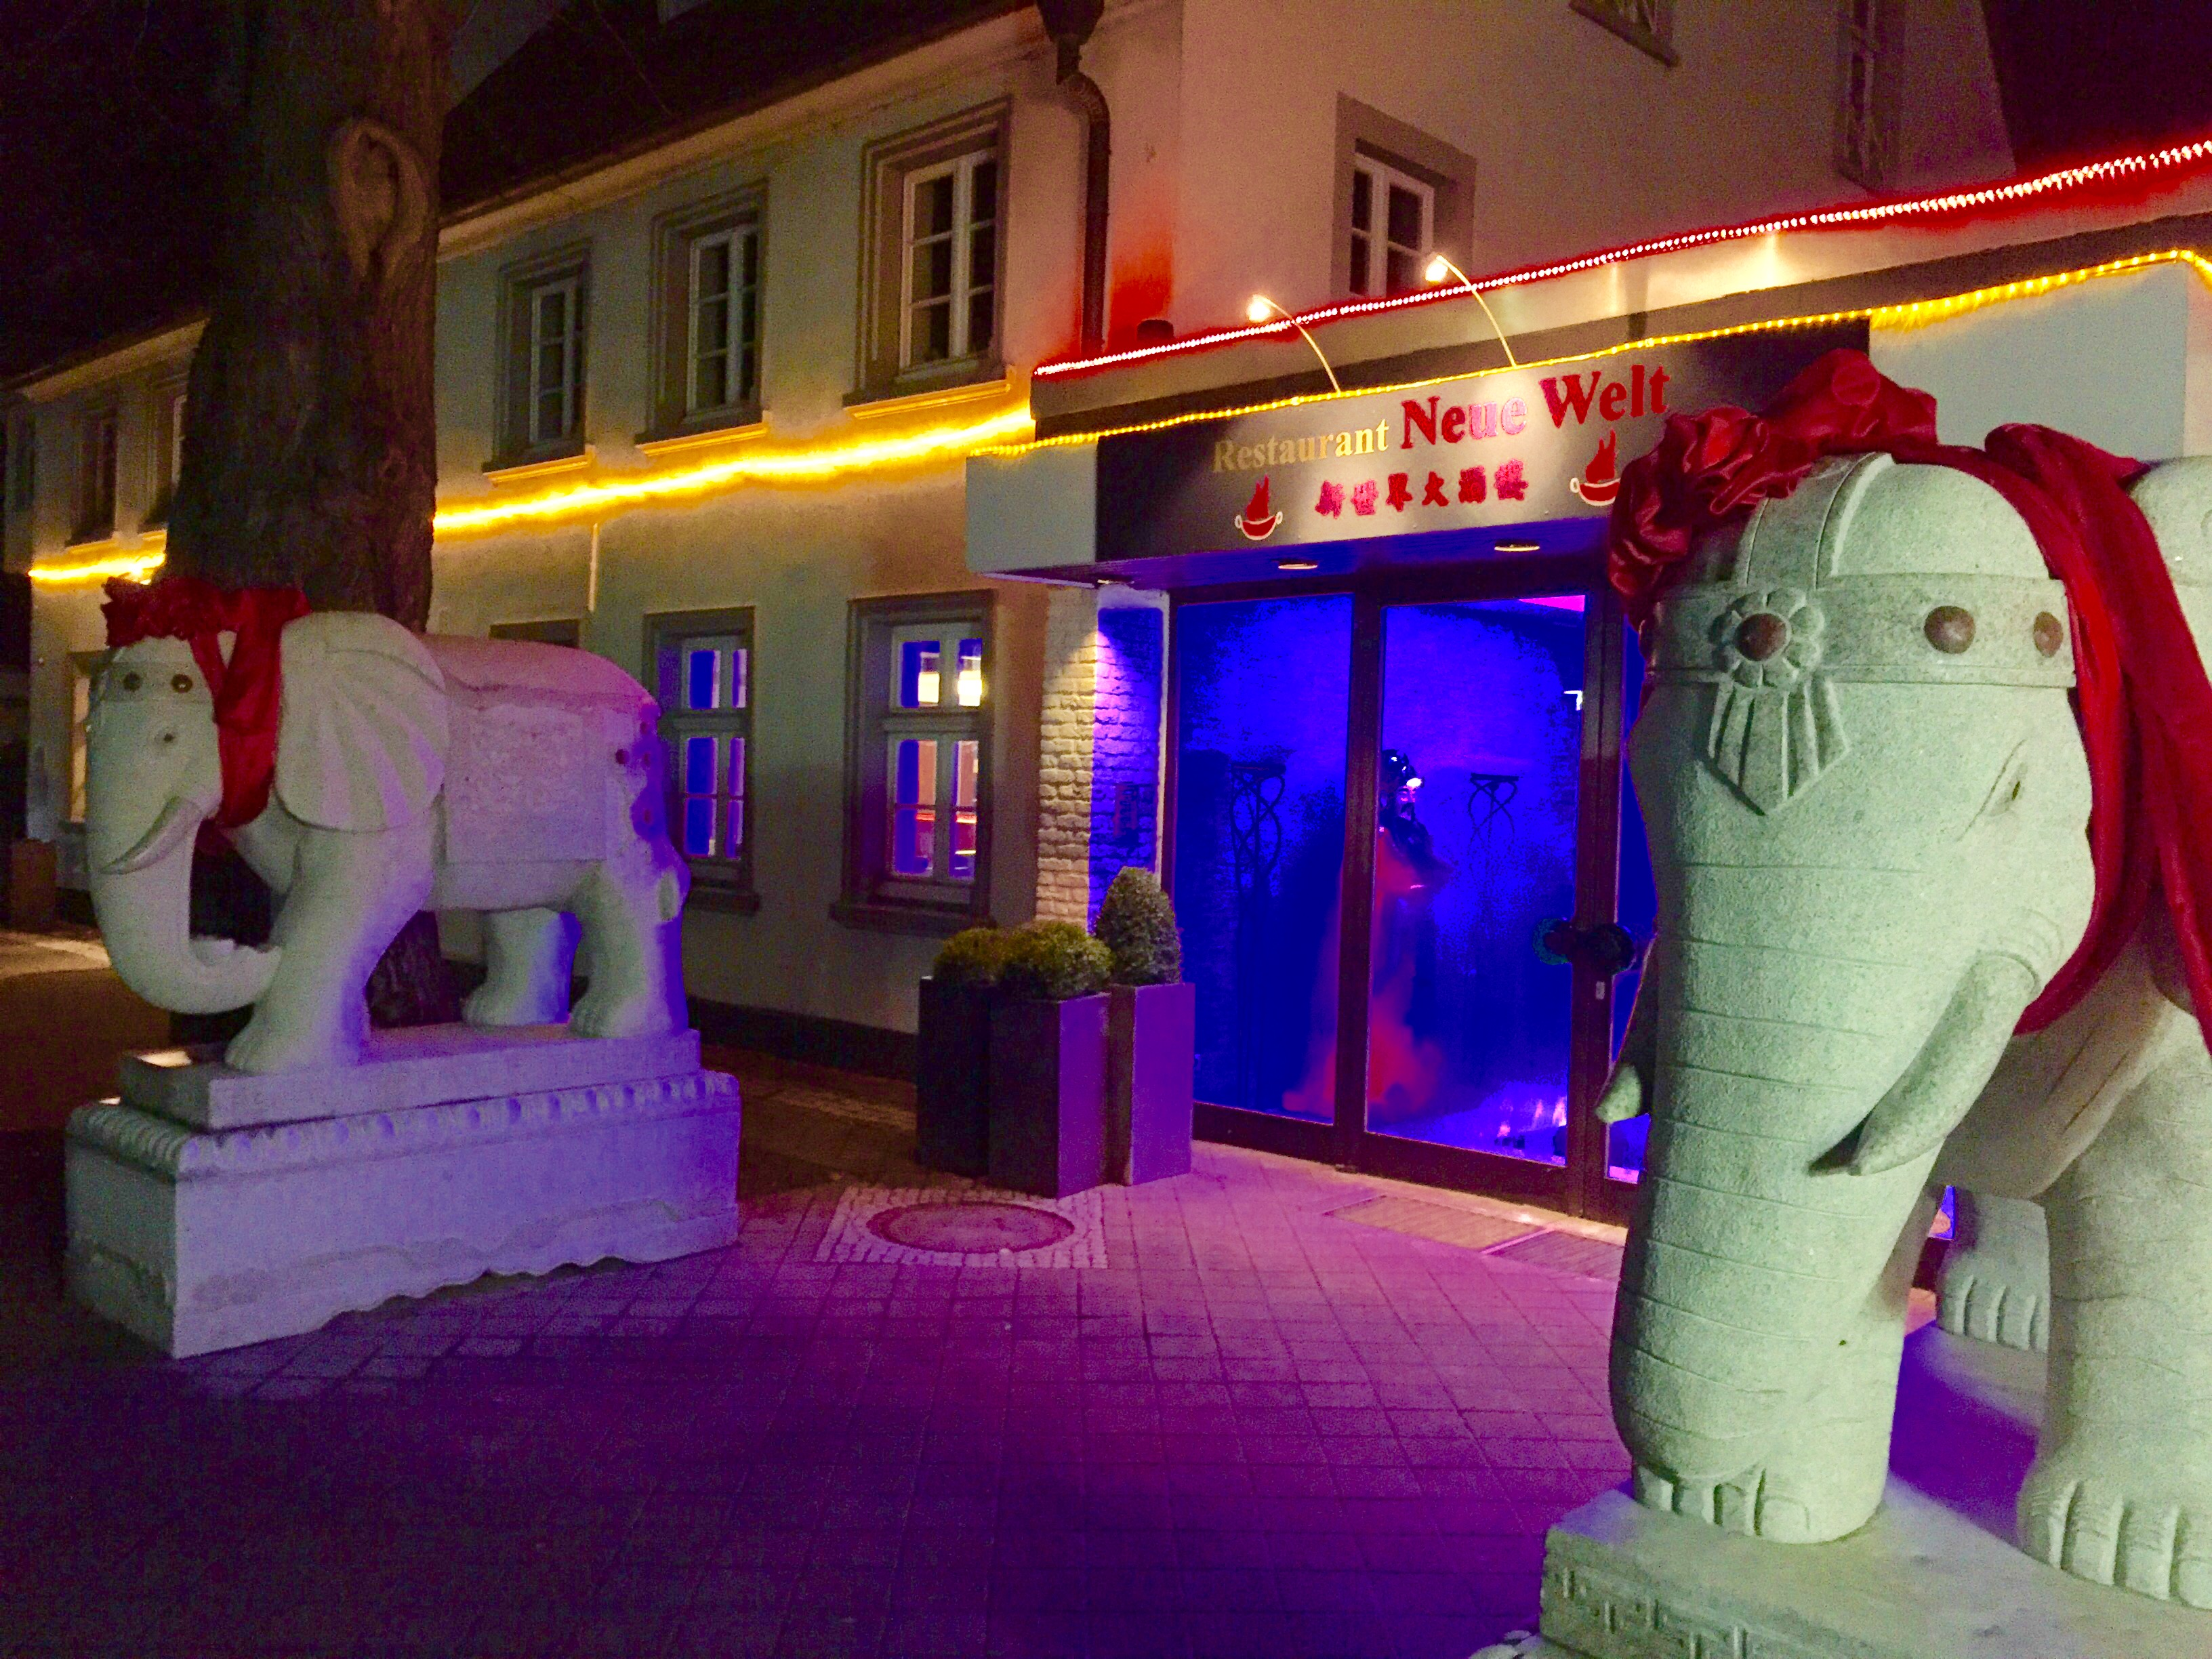 Chinarestuarant Neue Welt in Bad Waldliesborn - Hotel Pension & Appartement Haus Stallmeister